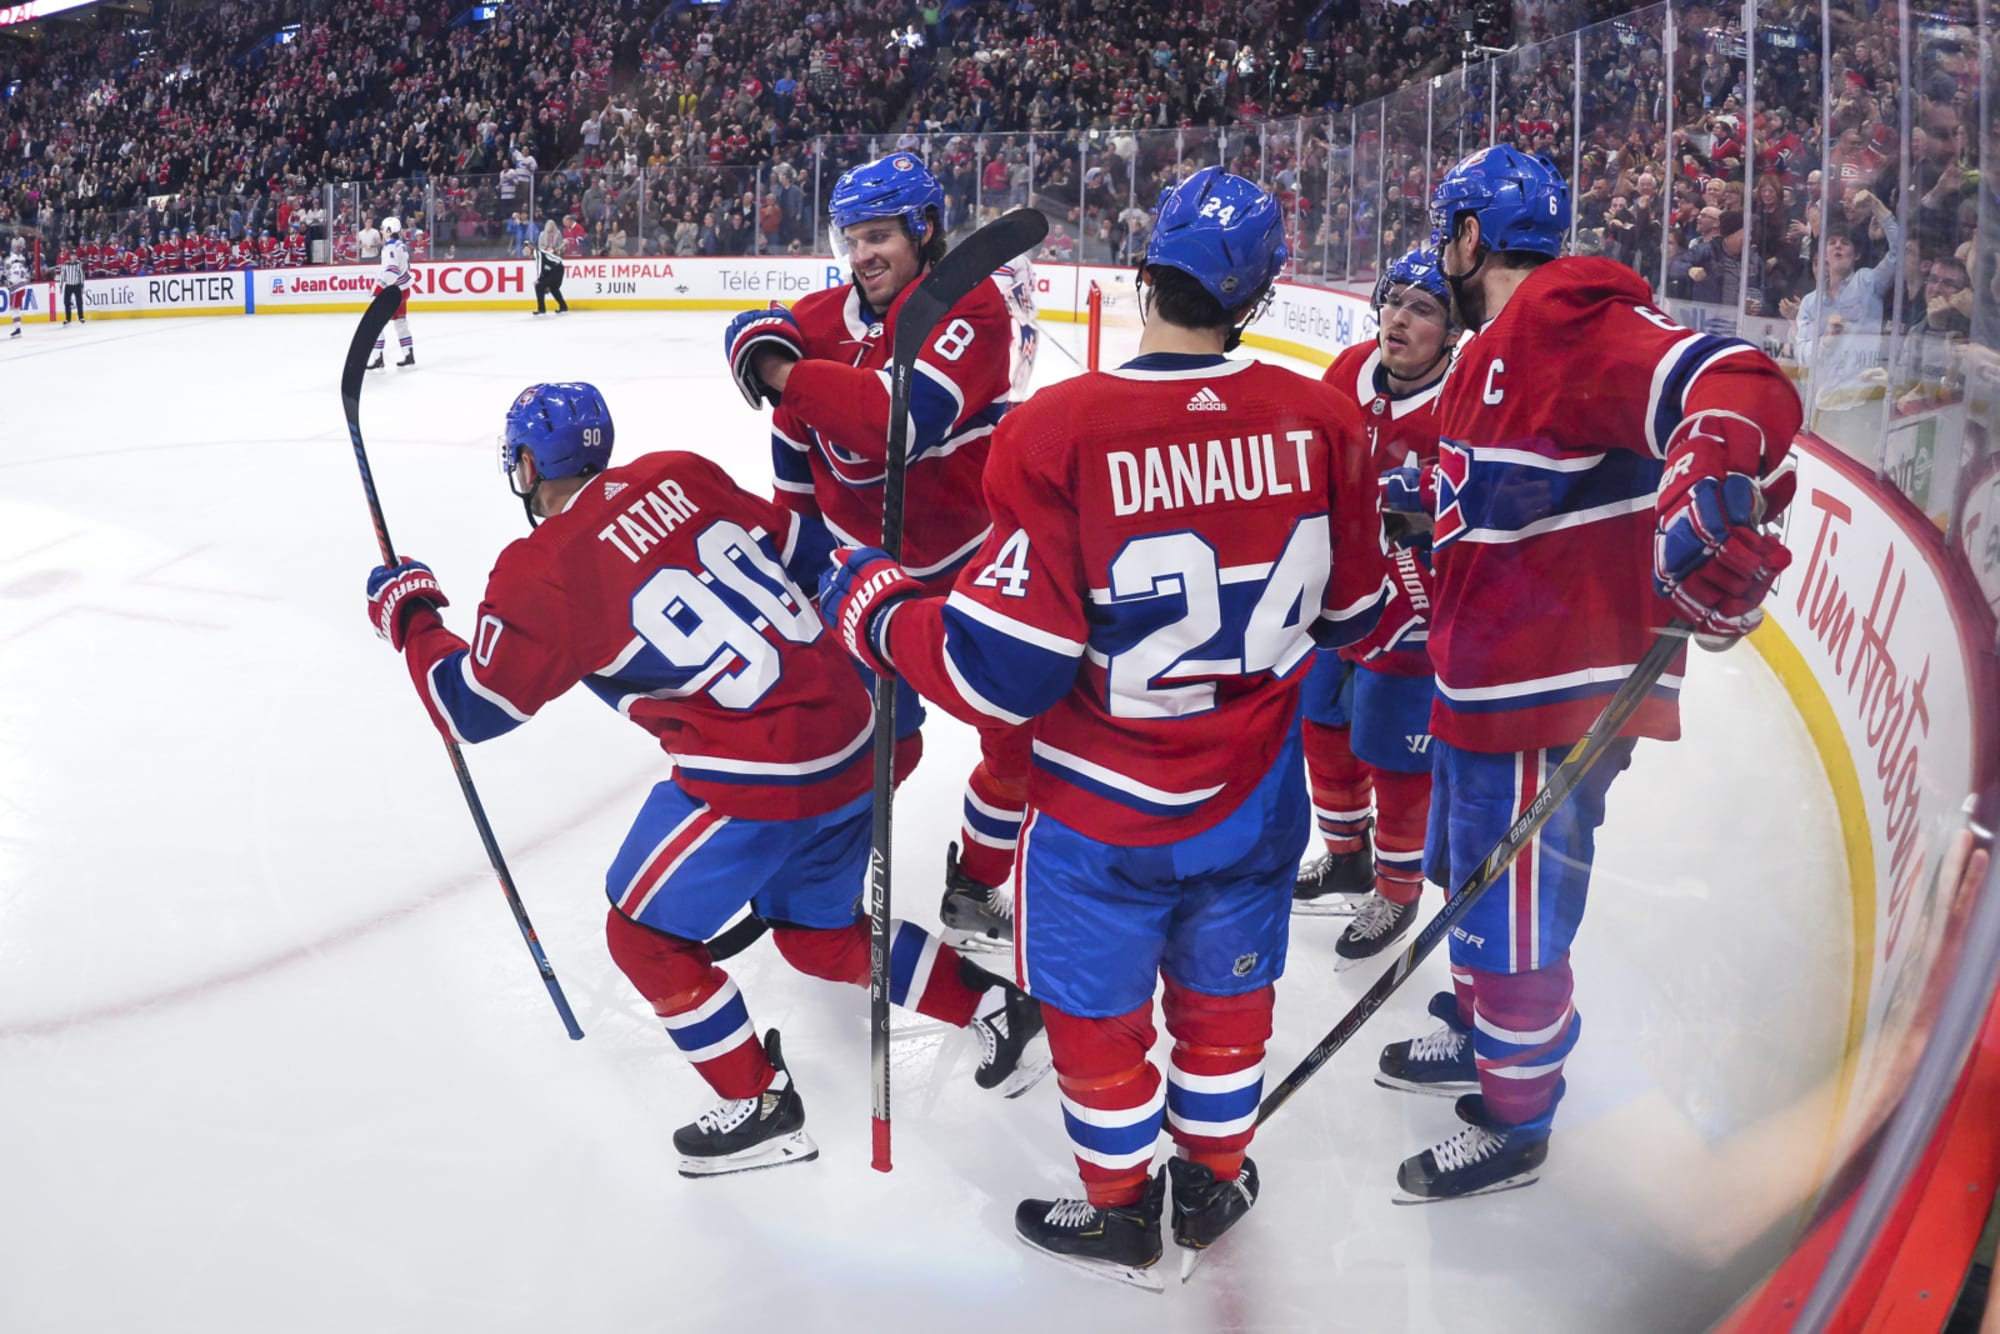 Canadiens July Is Here Meaning We Get To See Habs Hockey This Month